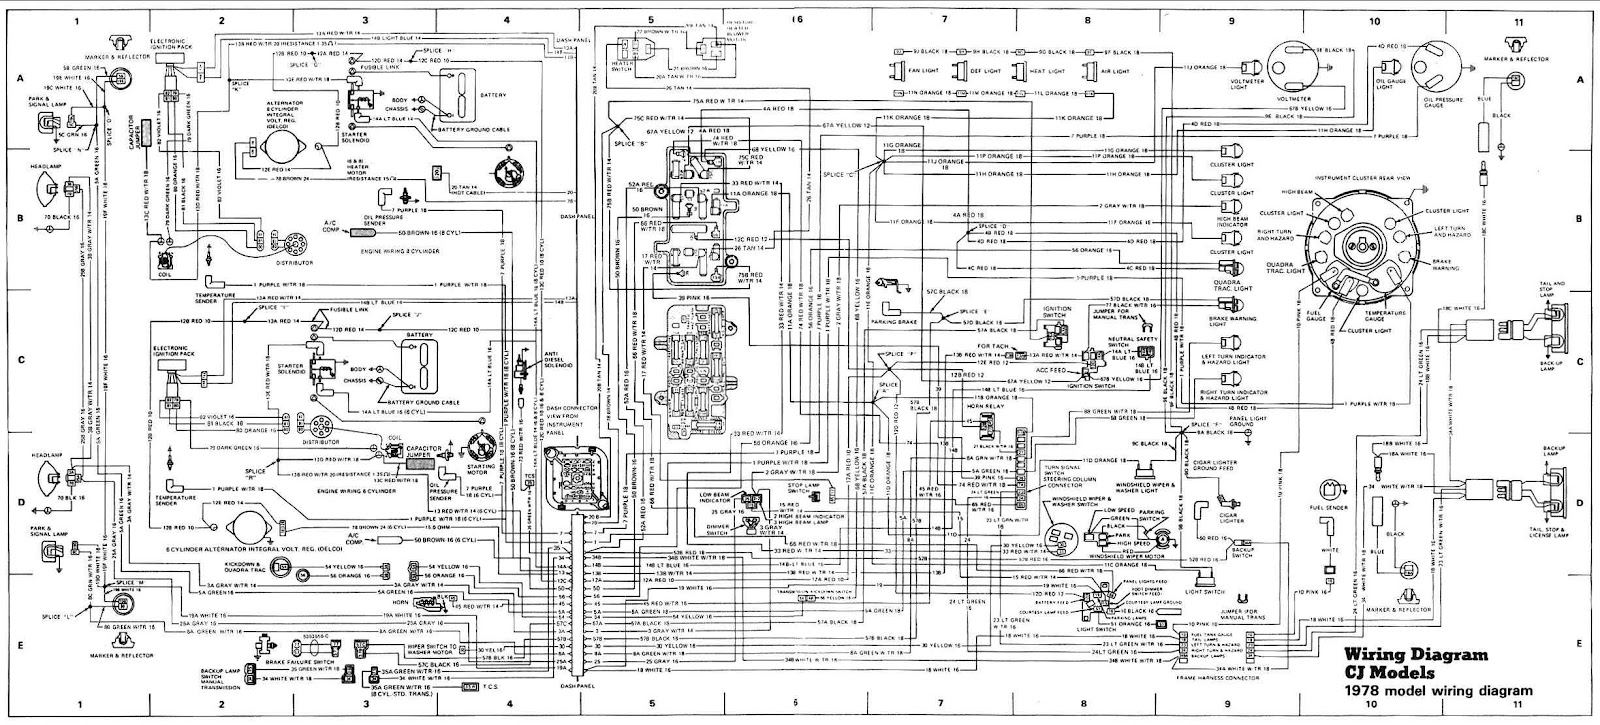 small resolution of 1978 jeep cj5 wiring diagram free download wiring diagrams on john deere 210le service manual led